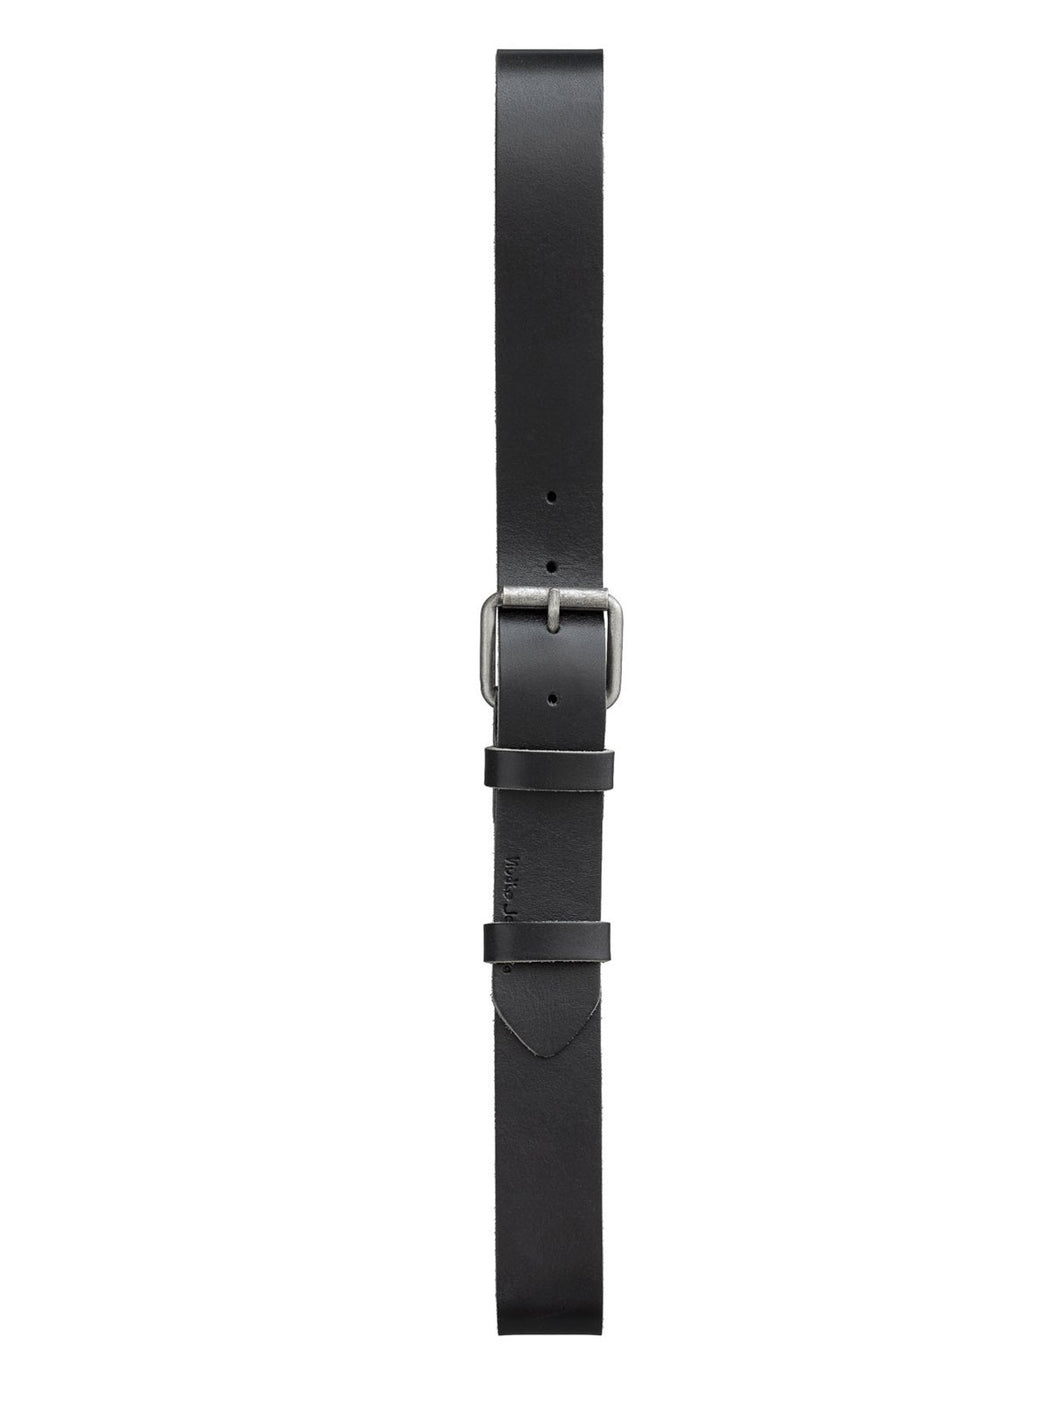 NUDIE JEANS Pedersson LEATHER BELT- Black